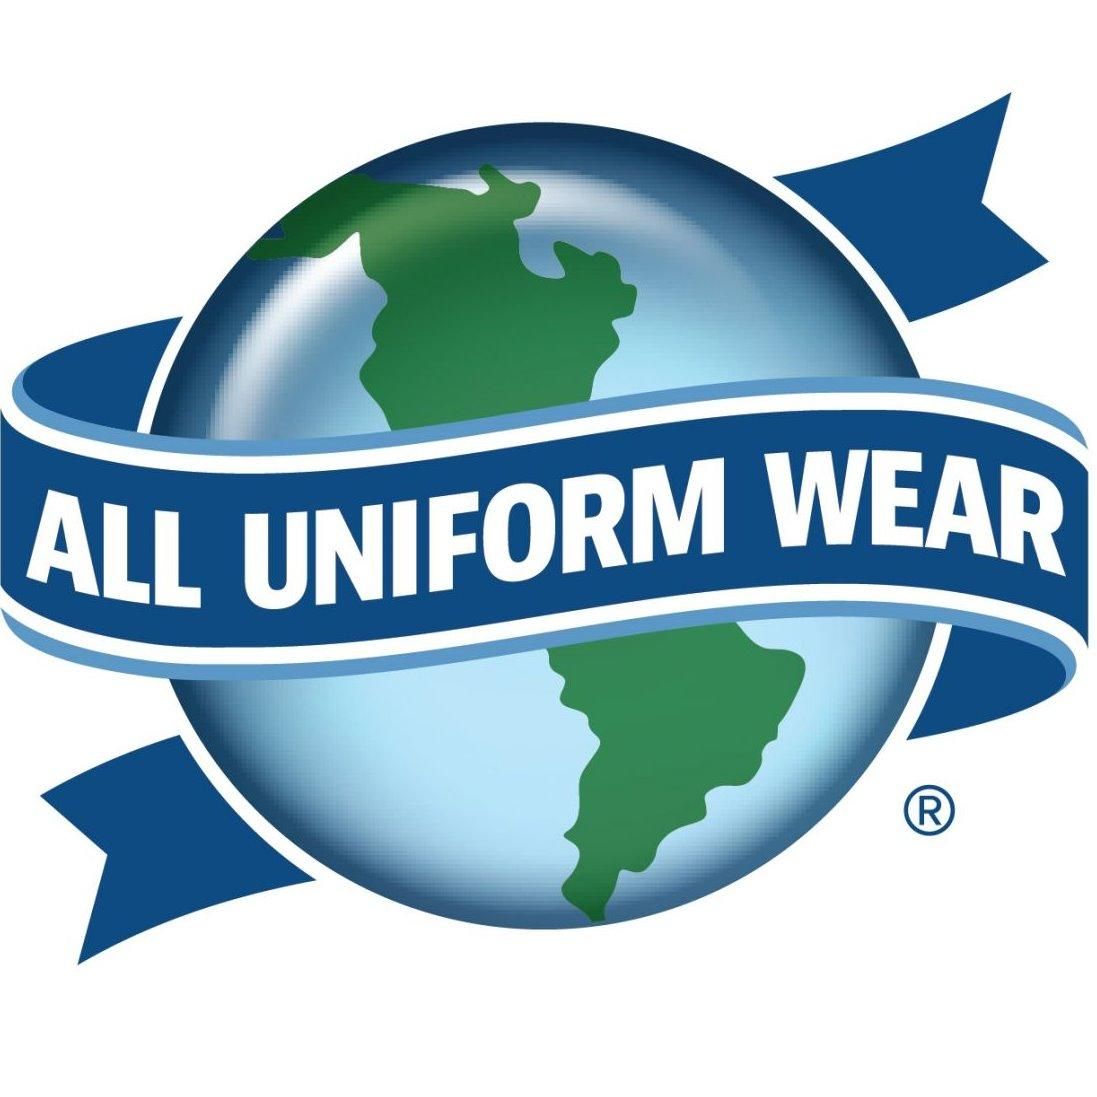 All Uniform Wear